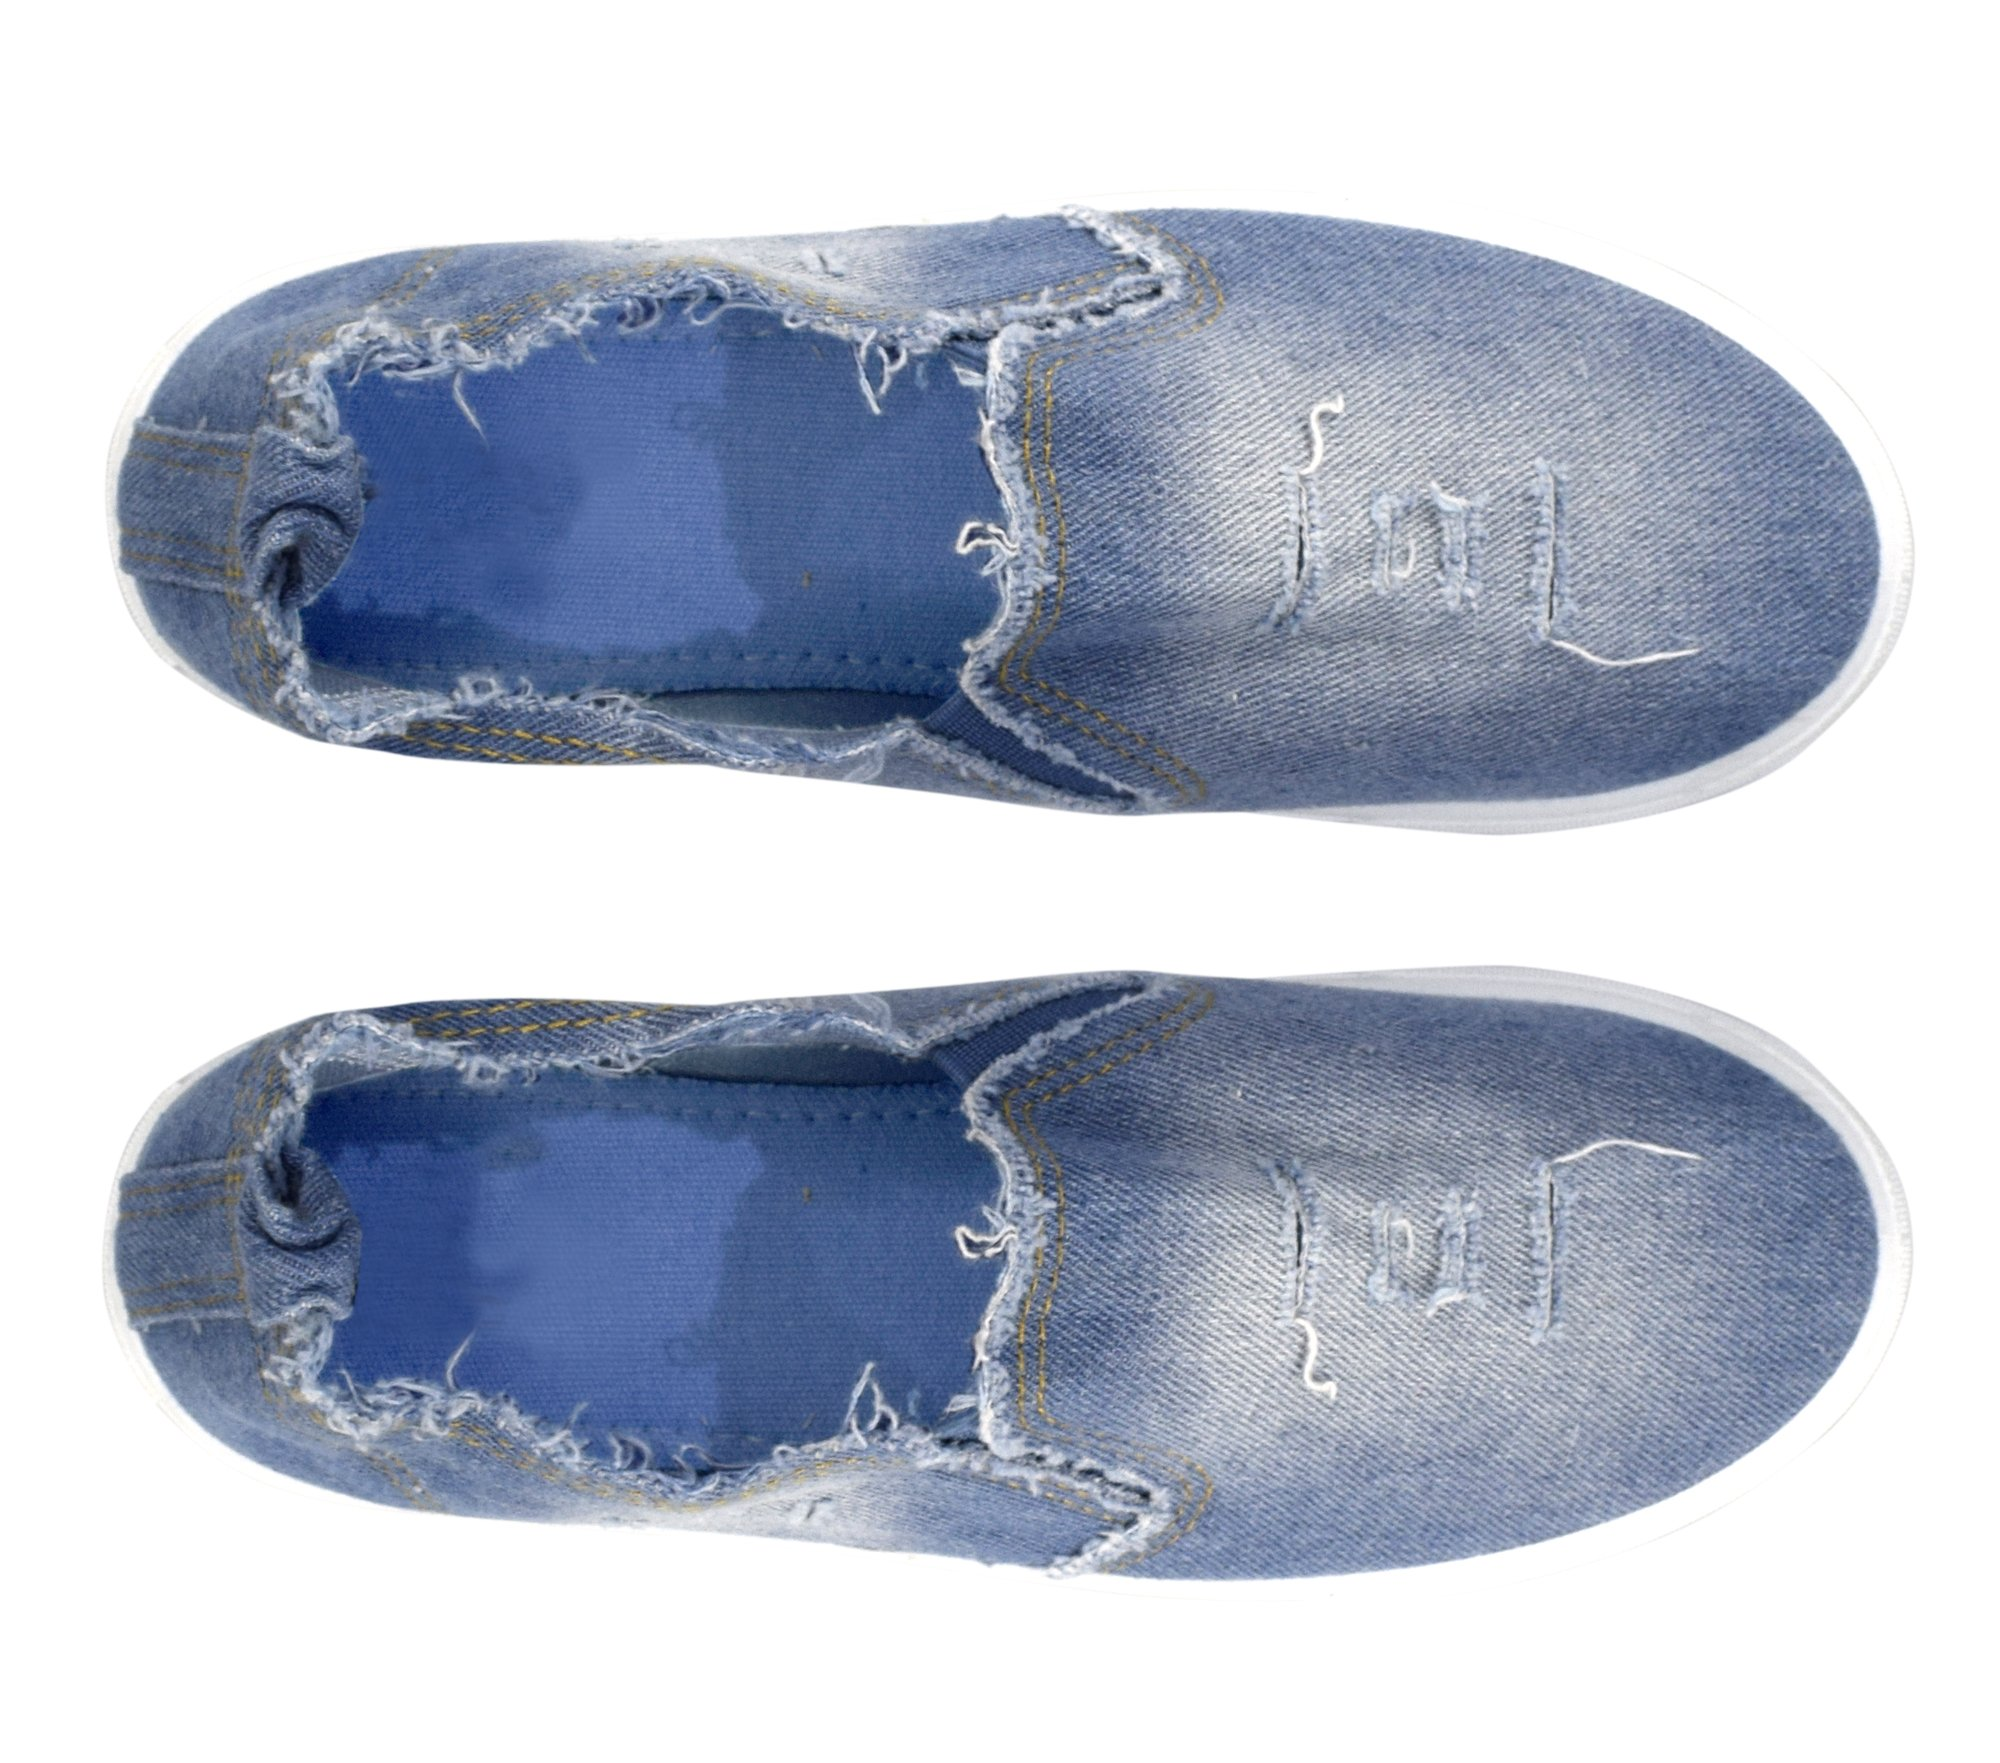 Peach Couture Womens Fashion Distressed Denim Casual Shoes Slip On Sneakers (L Blue 8) by Peach Couture (Image #2)